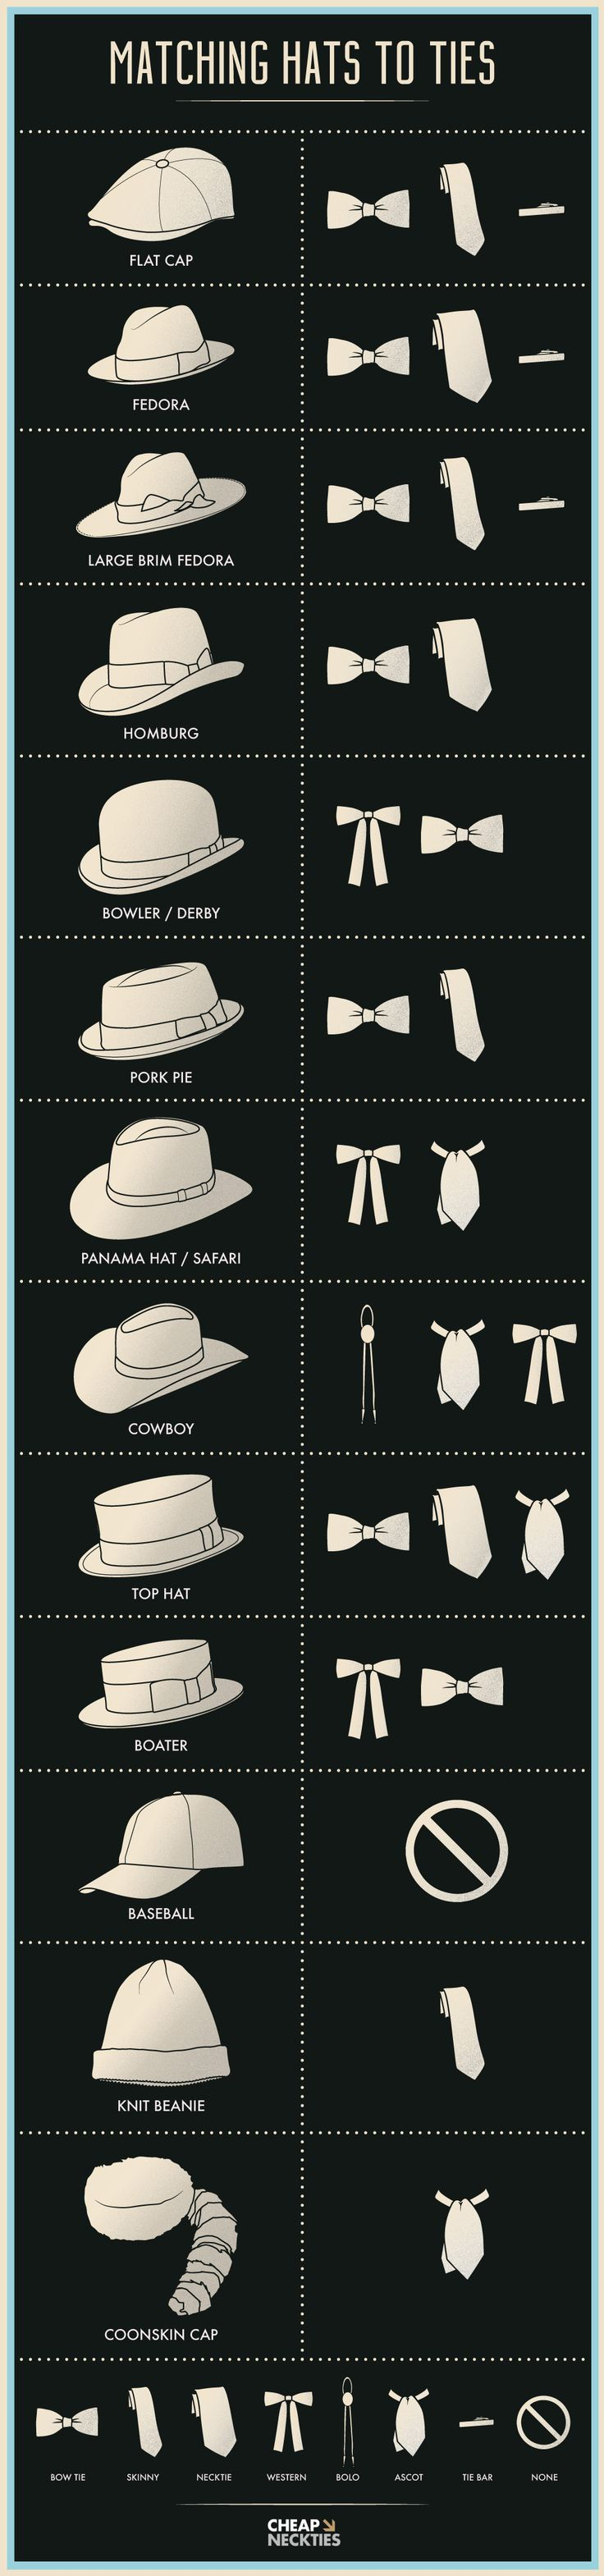 An infographic guide for matching different hat styles to men's neckwear. http://www.99wtf.net/category/trends/